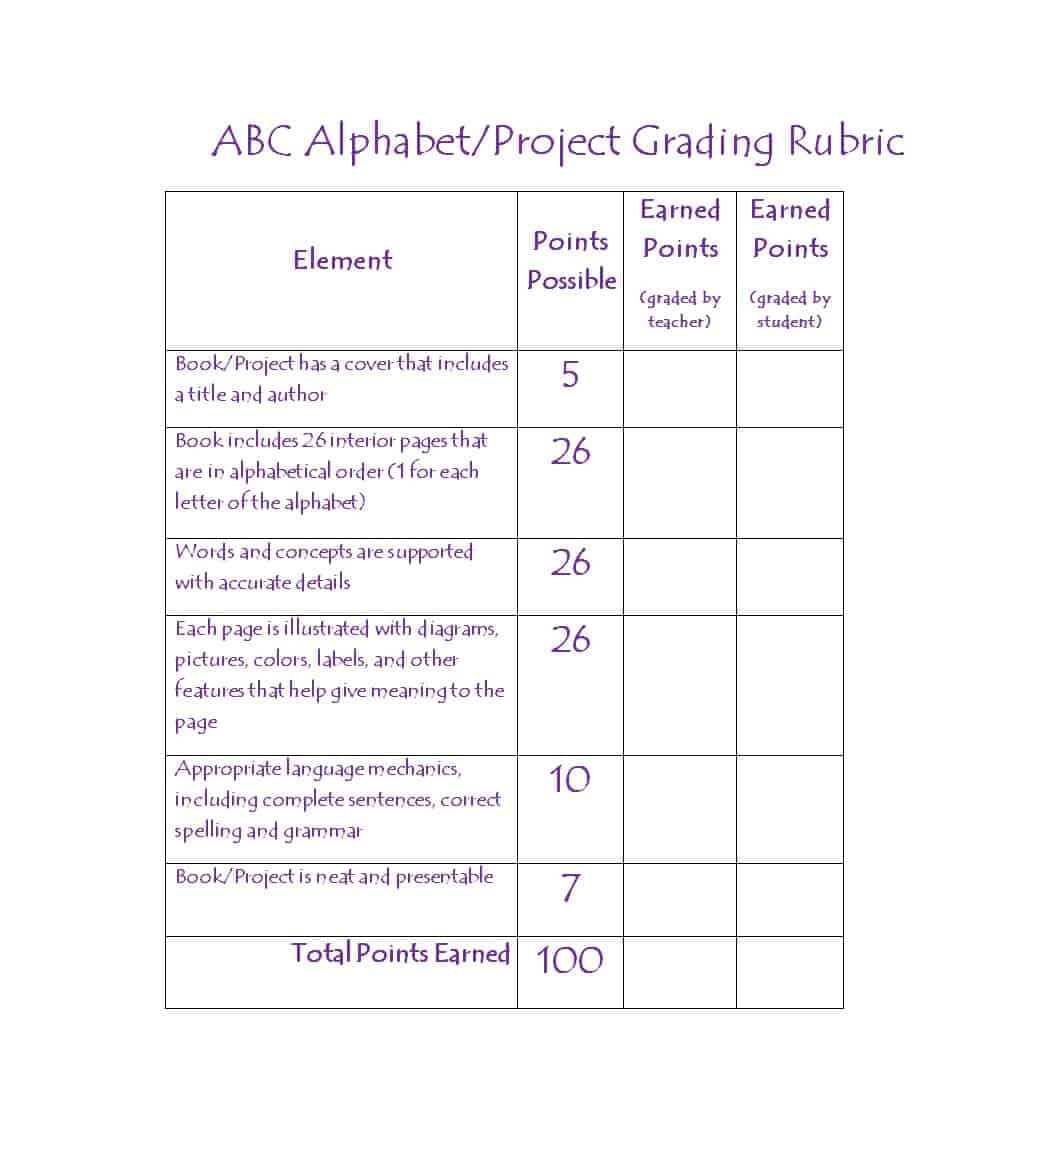 46 Editable Rubric Templates (Word Format) ᐅ Template Lab Regarding Blank Rubric Template